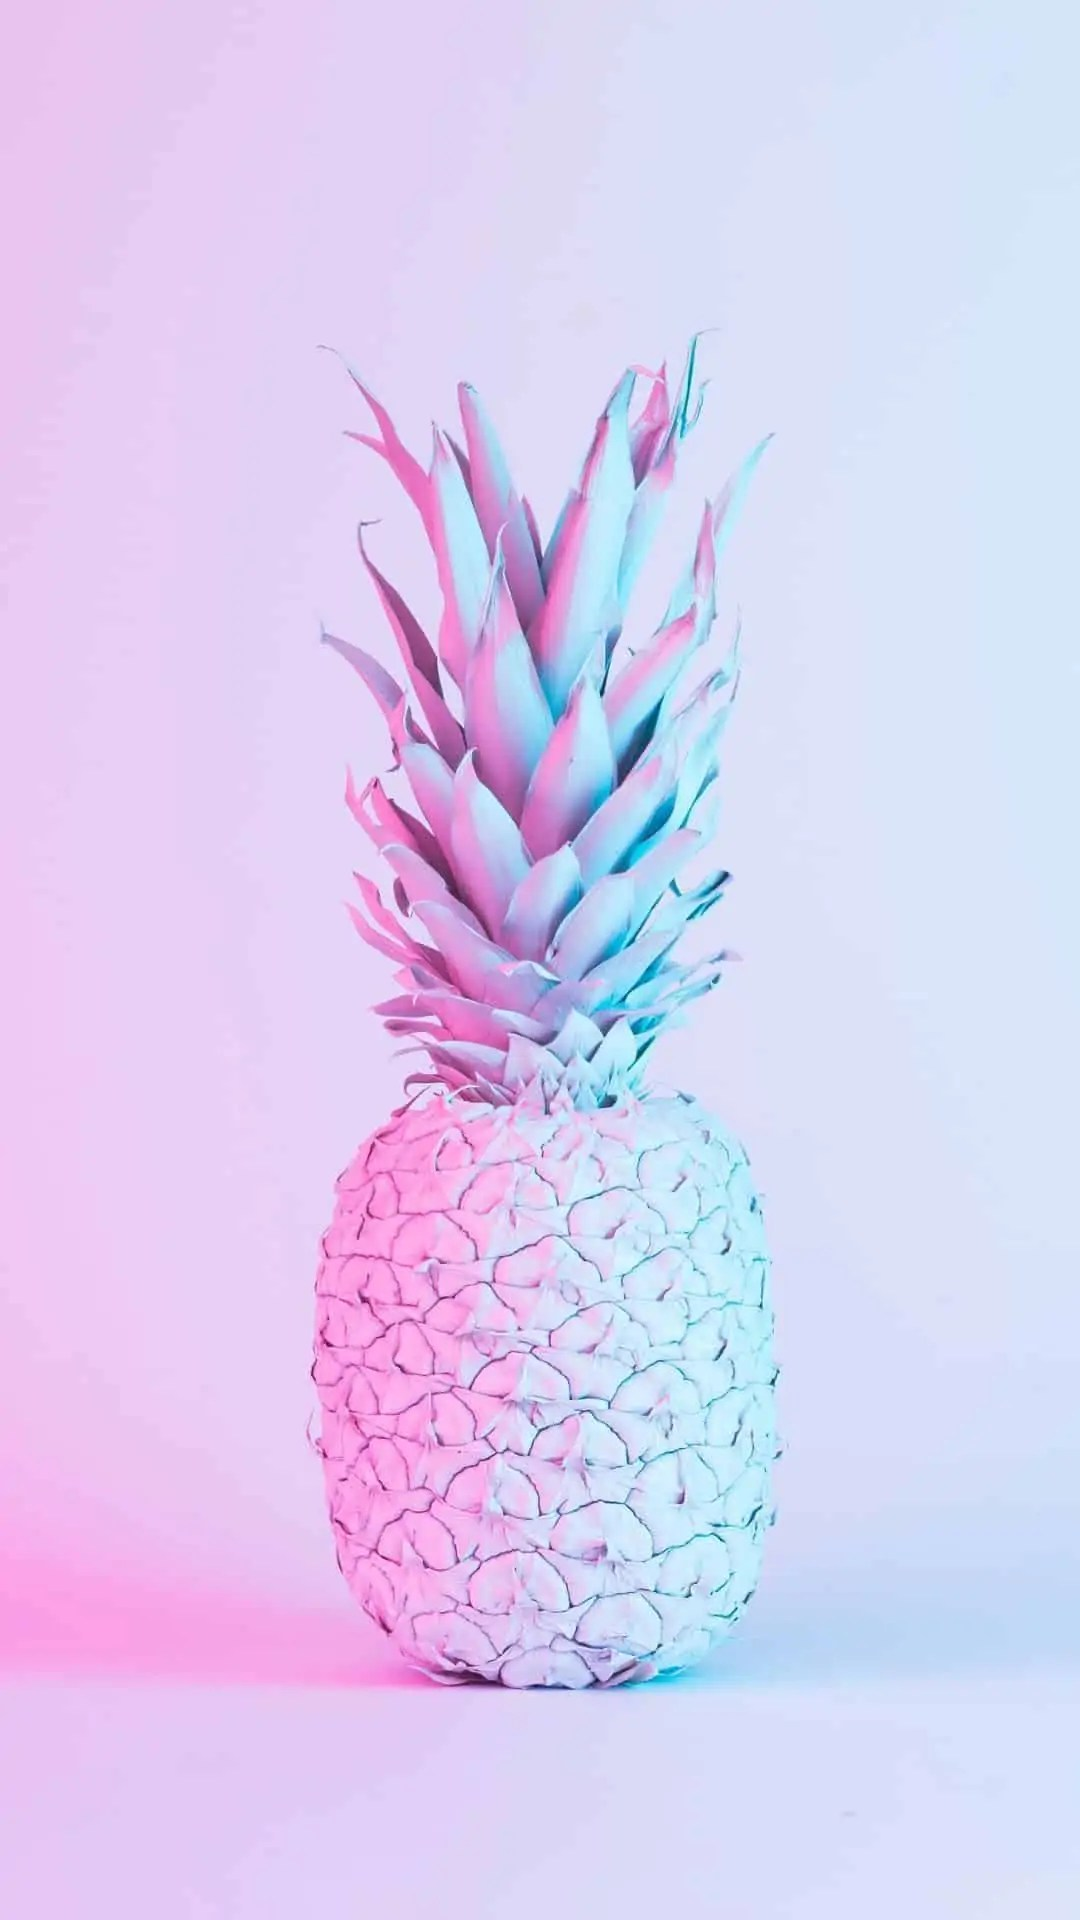 35-Pineapple-Wallpaper-for-iPhone-Free-Downloads 5